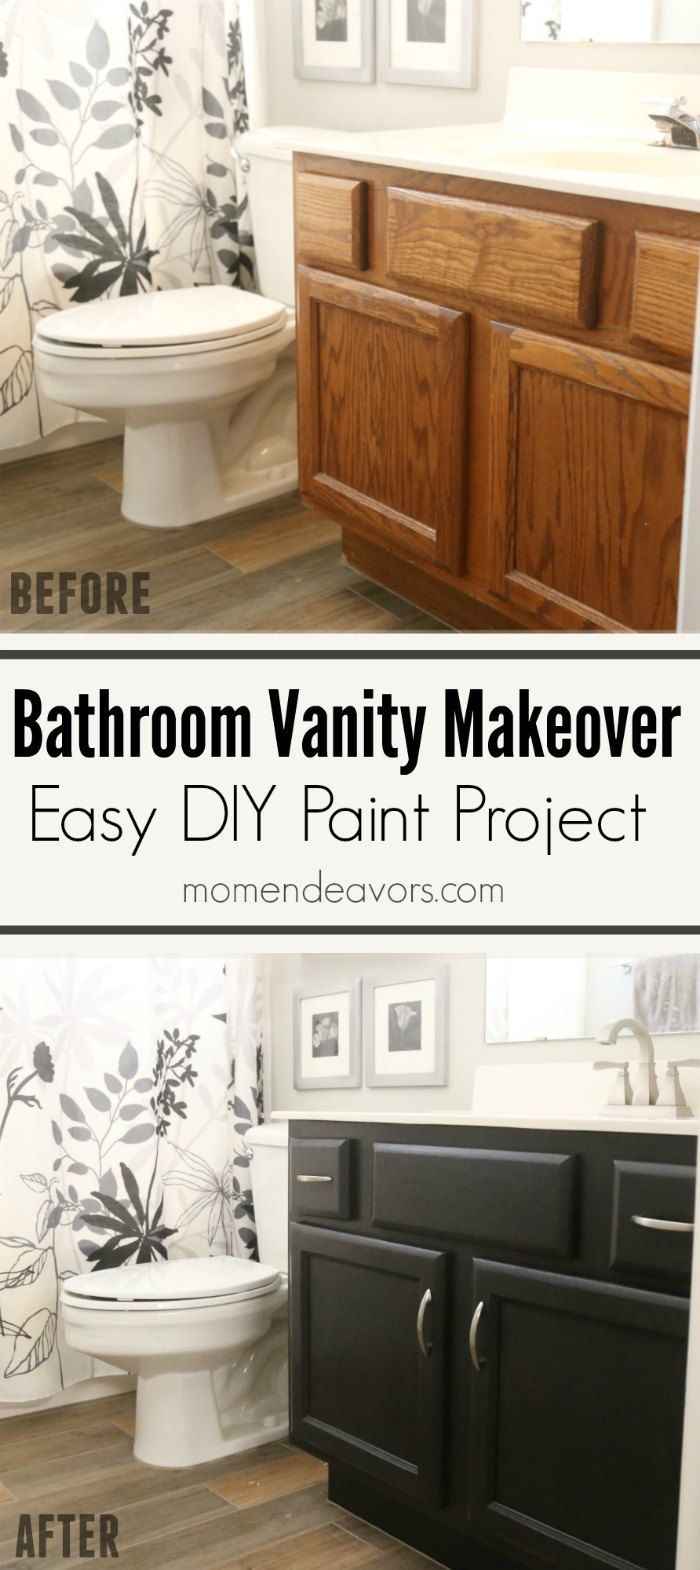 painting bathroom cabinets color ideas pin by endeavors on diy home decor 25408